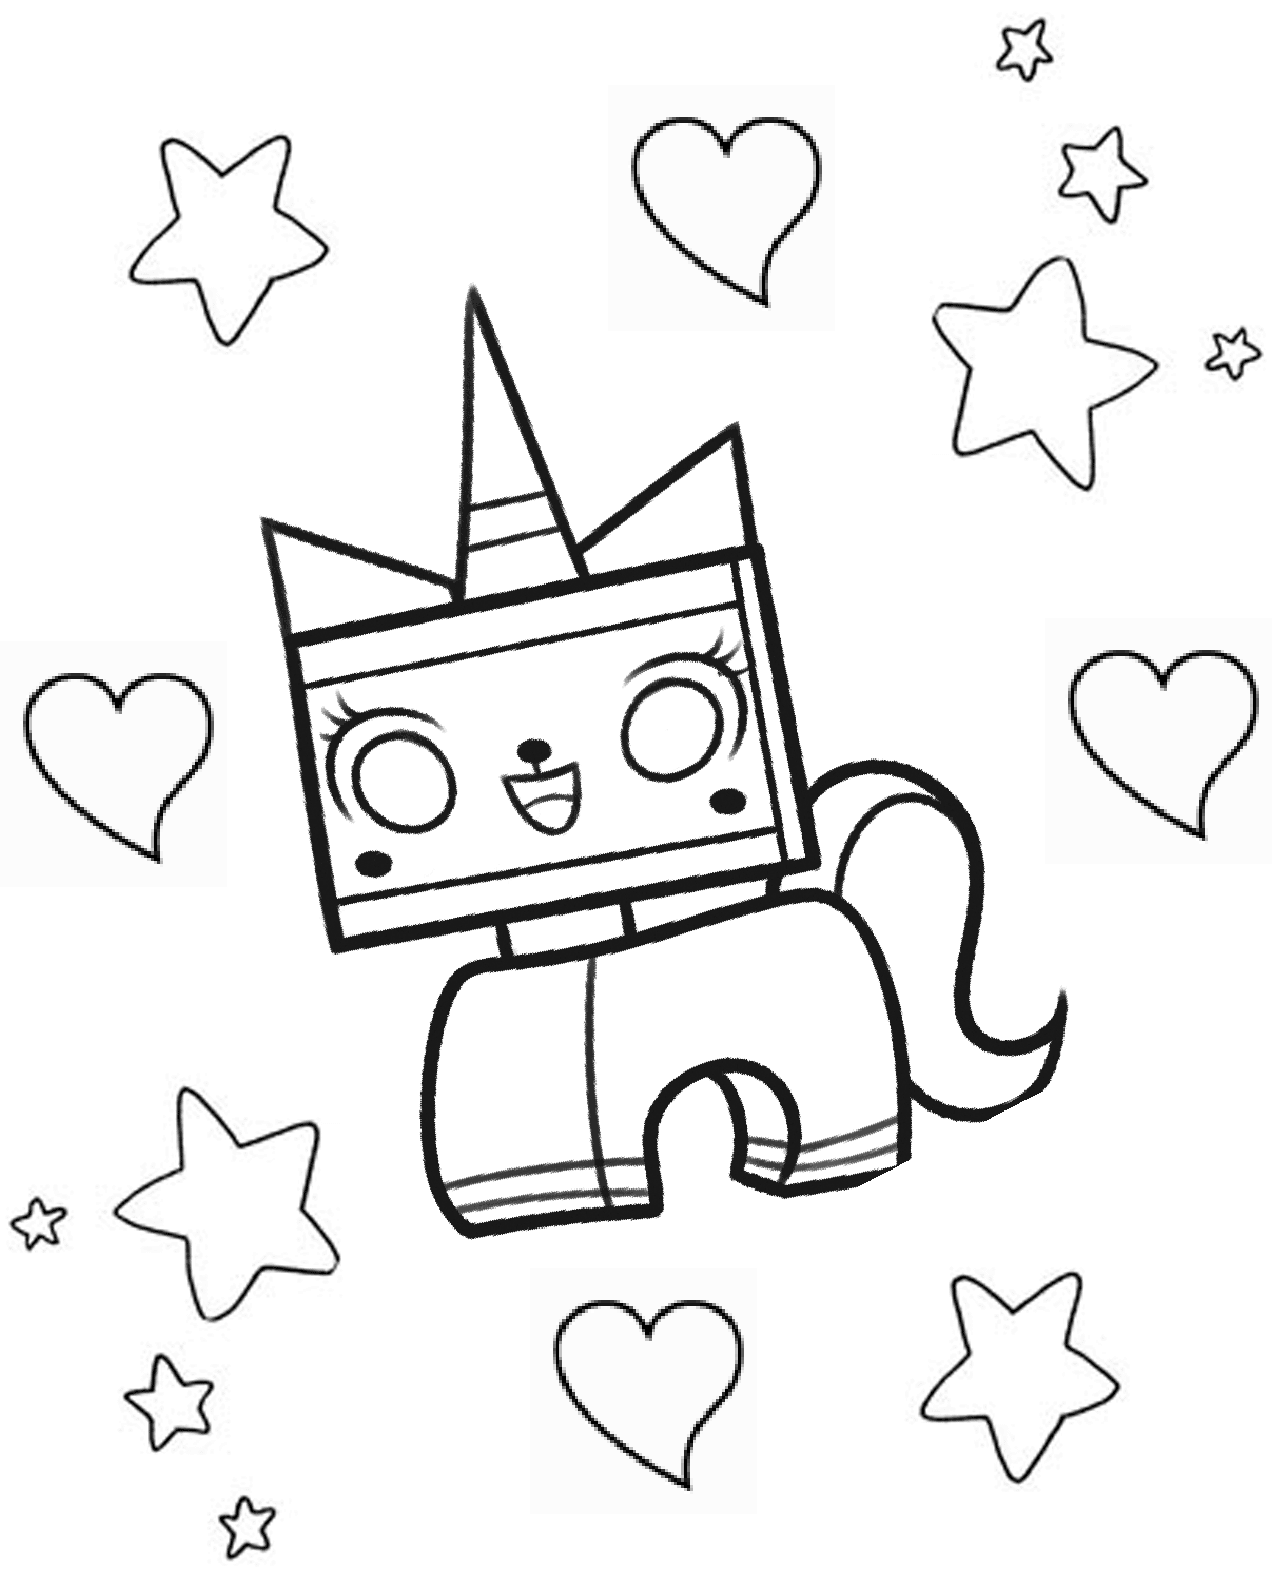 unikitty coloring sheets princess unikitty coloring pages by ianjmiller free unikitty sheets coloring